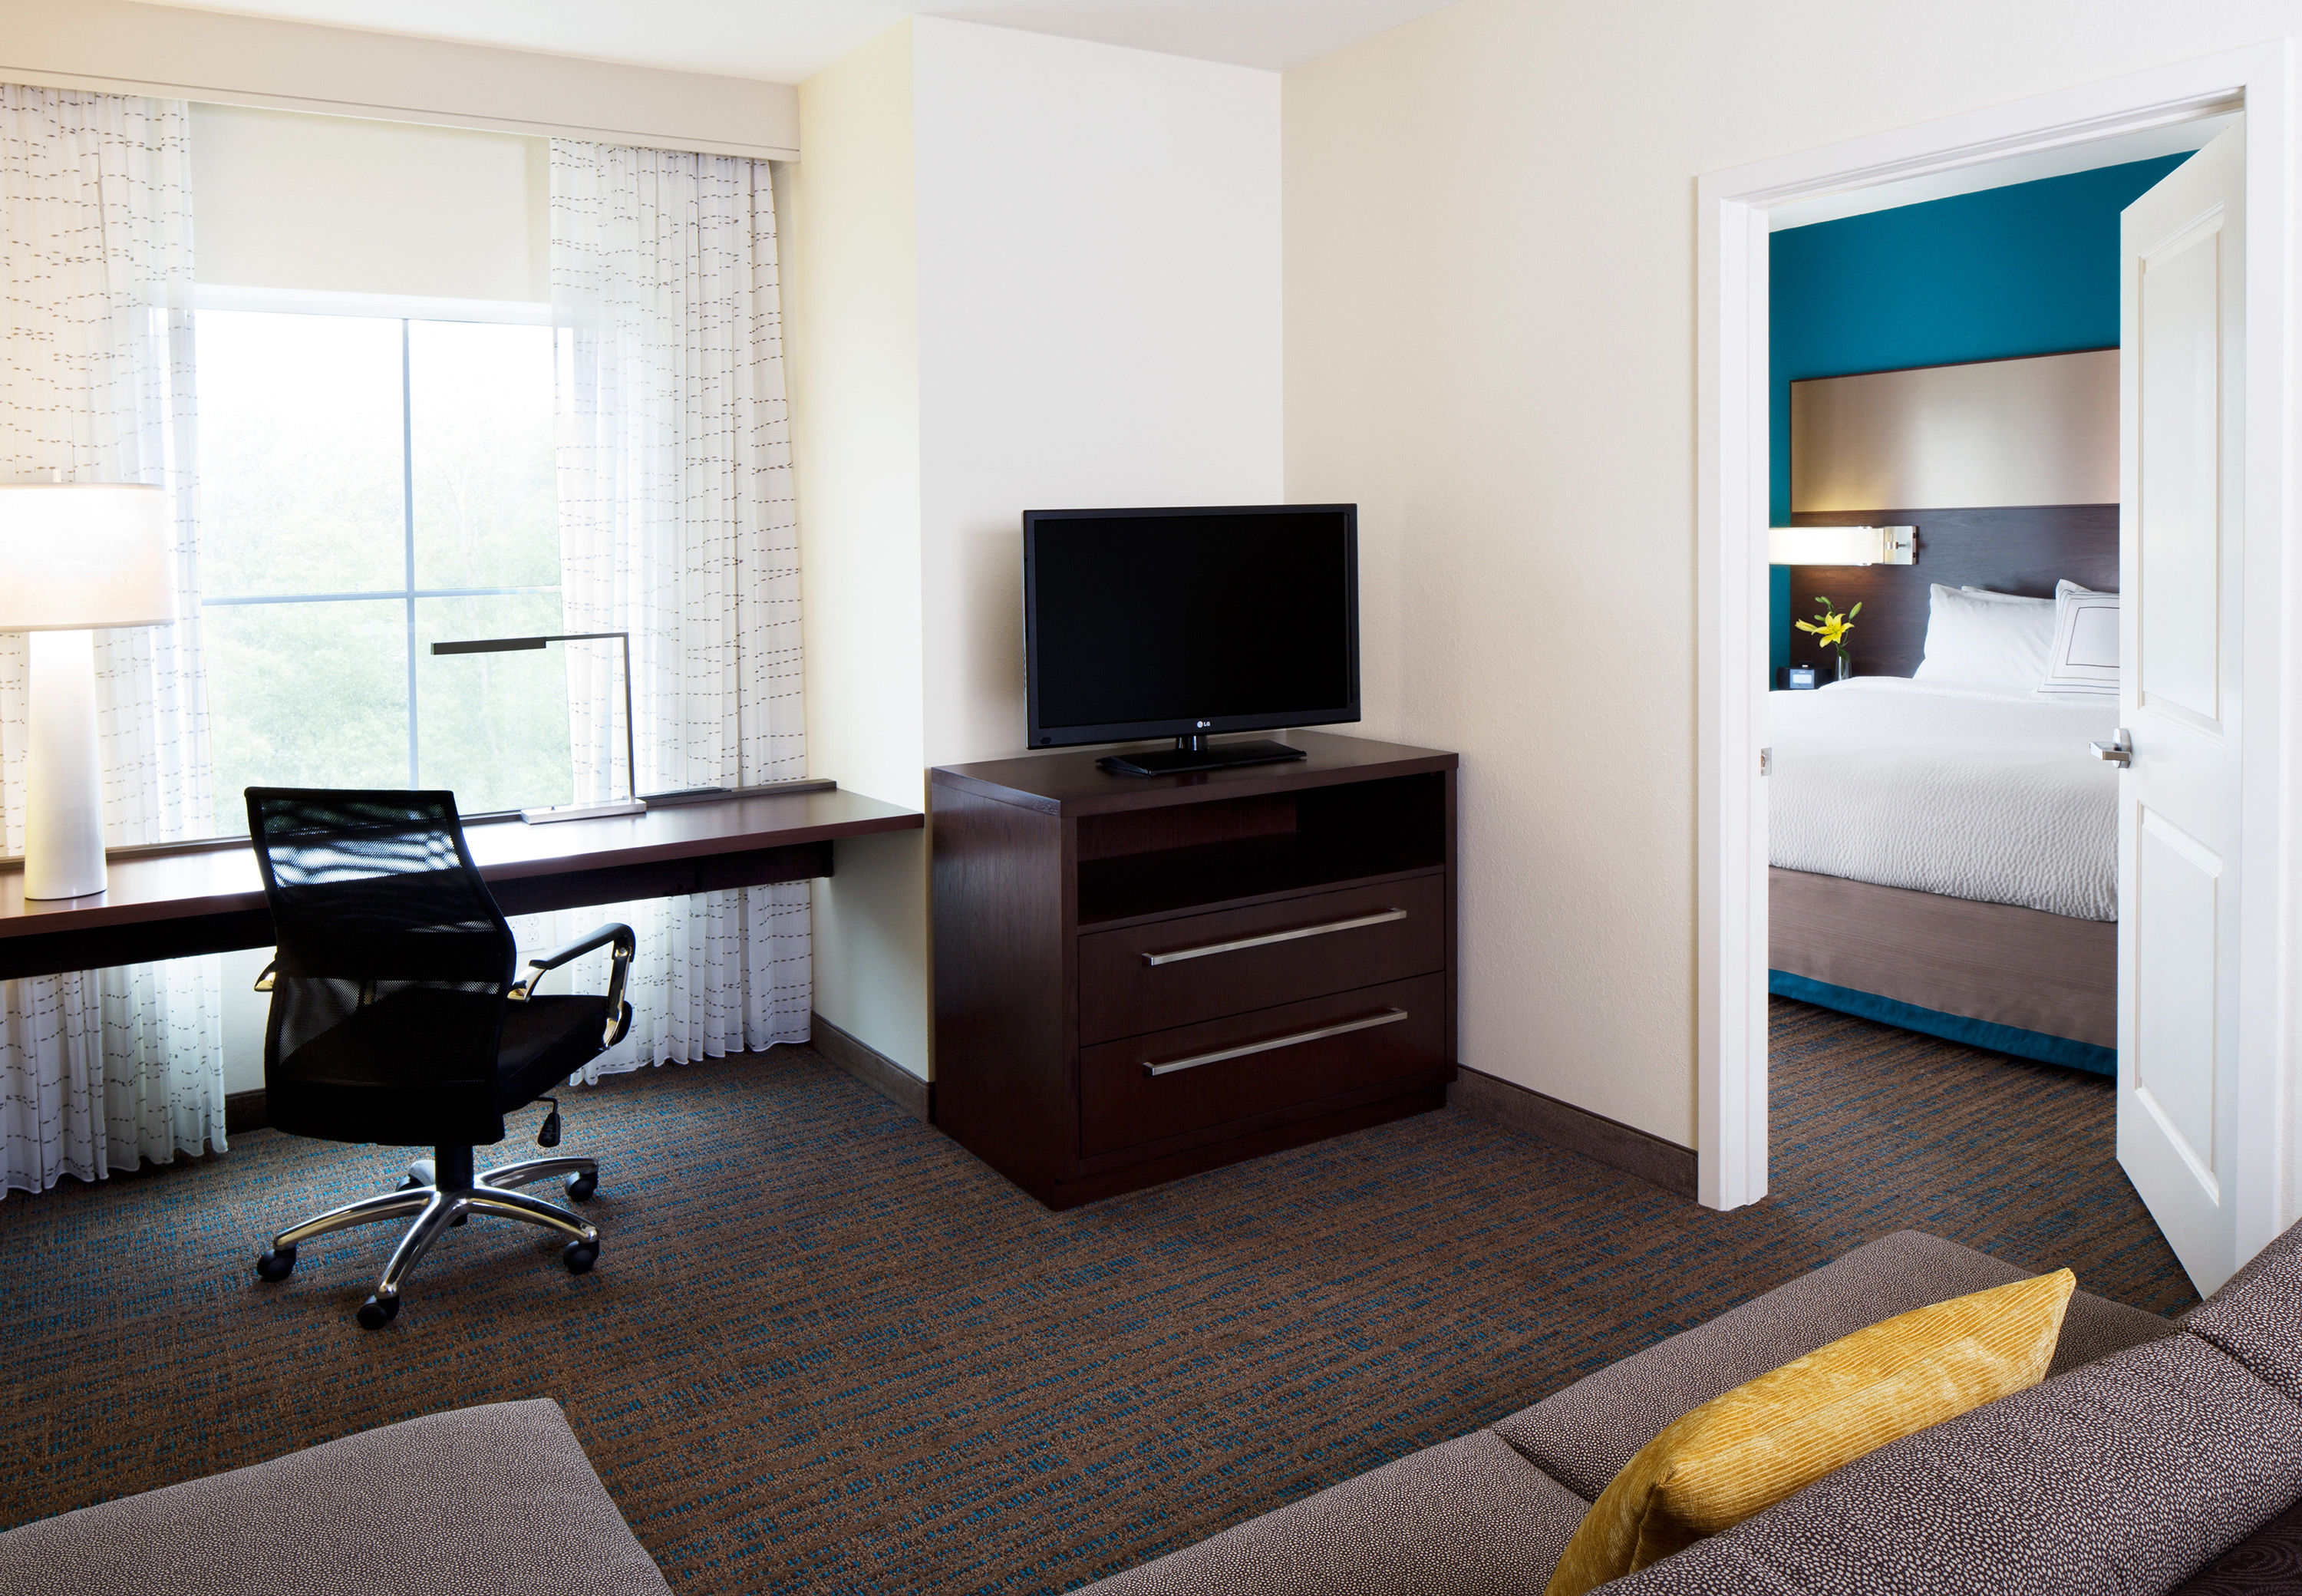 Residence Inn by Marriott Cleveland Avon at The Emerald Event Center image 4